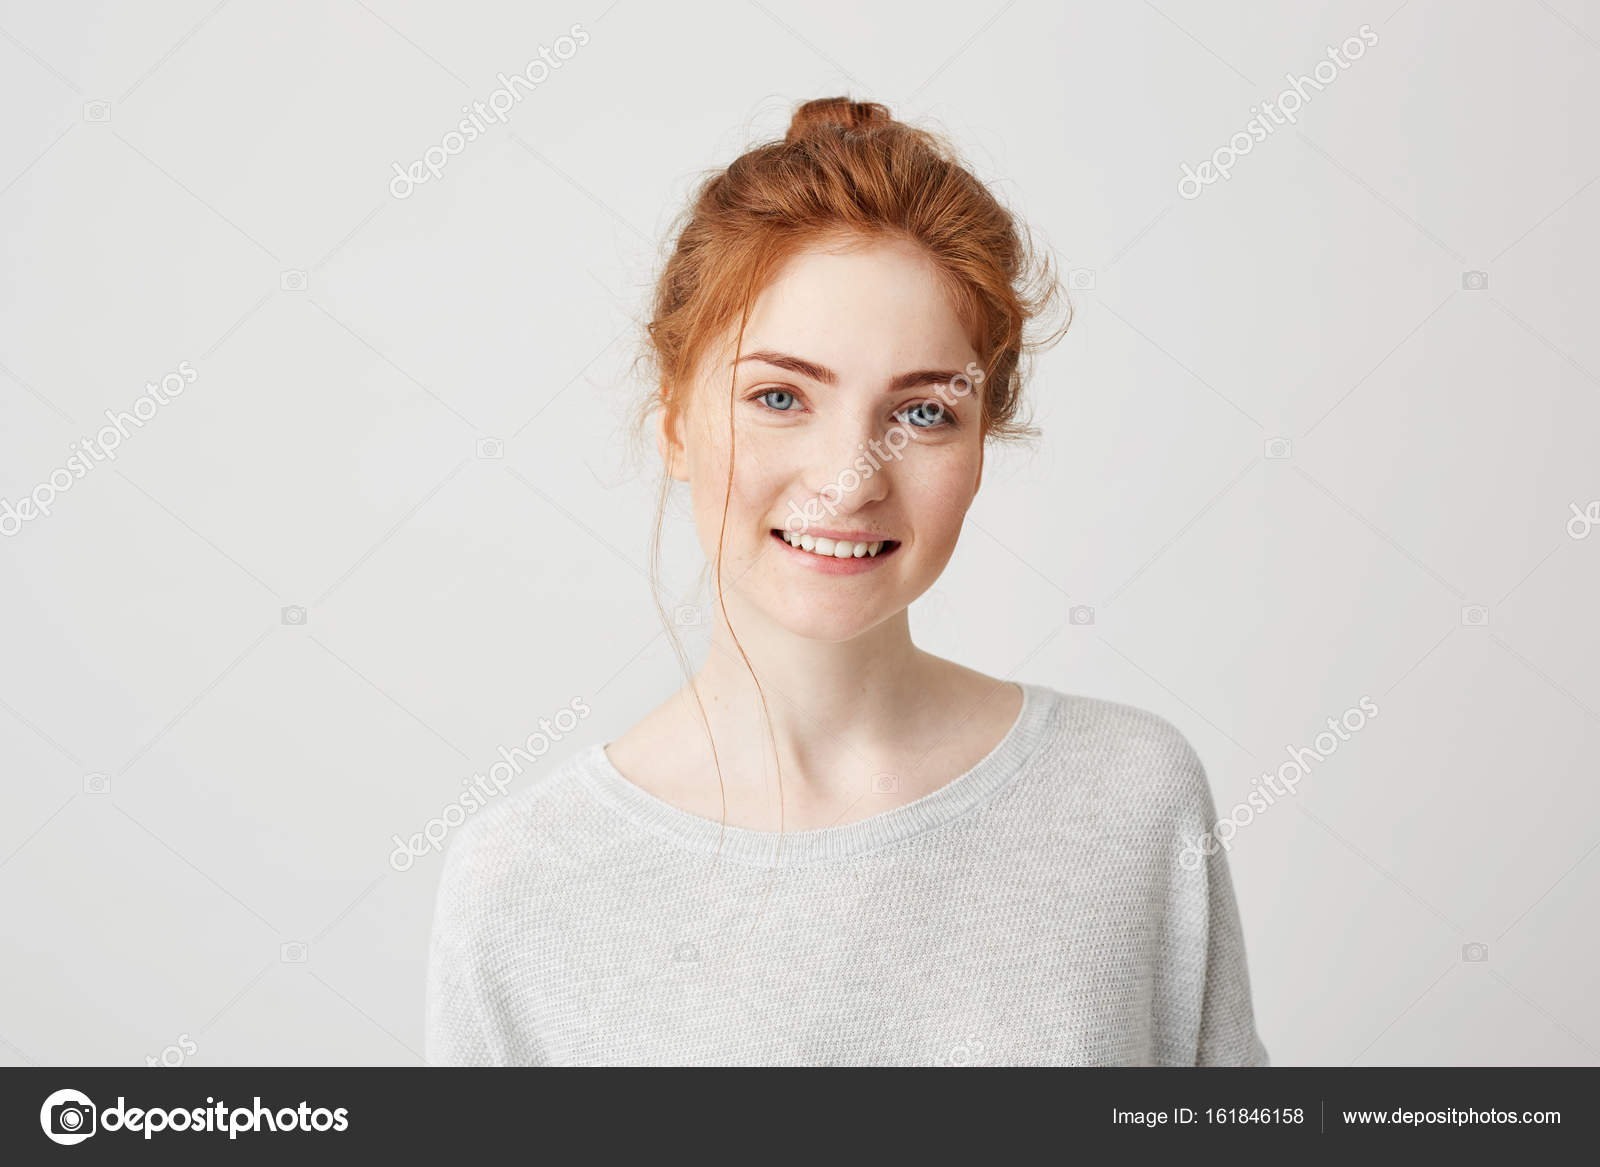 portrait of happy tender ginger girl with blue eyes and freckles